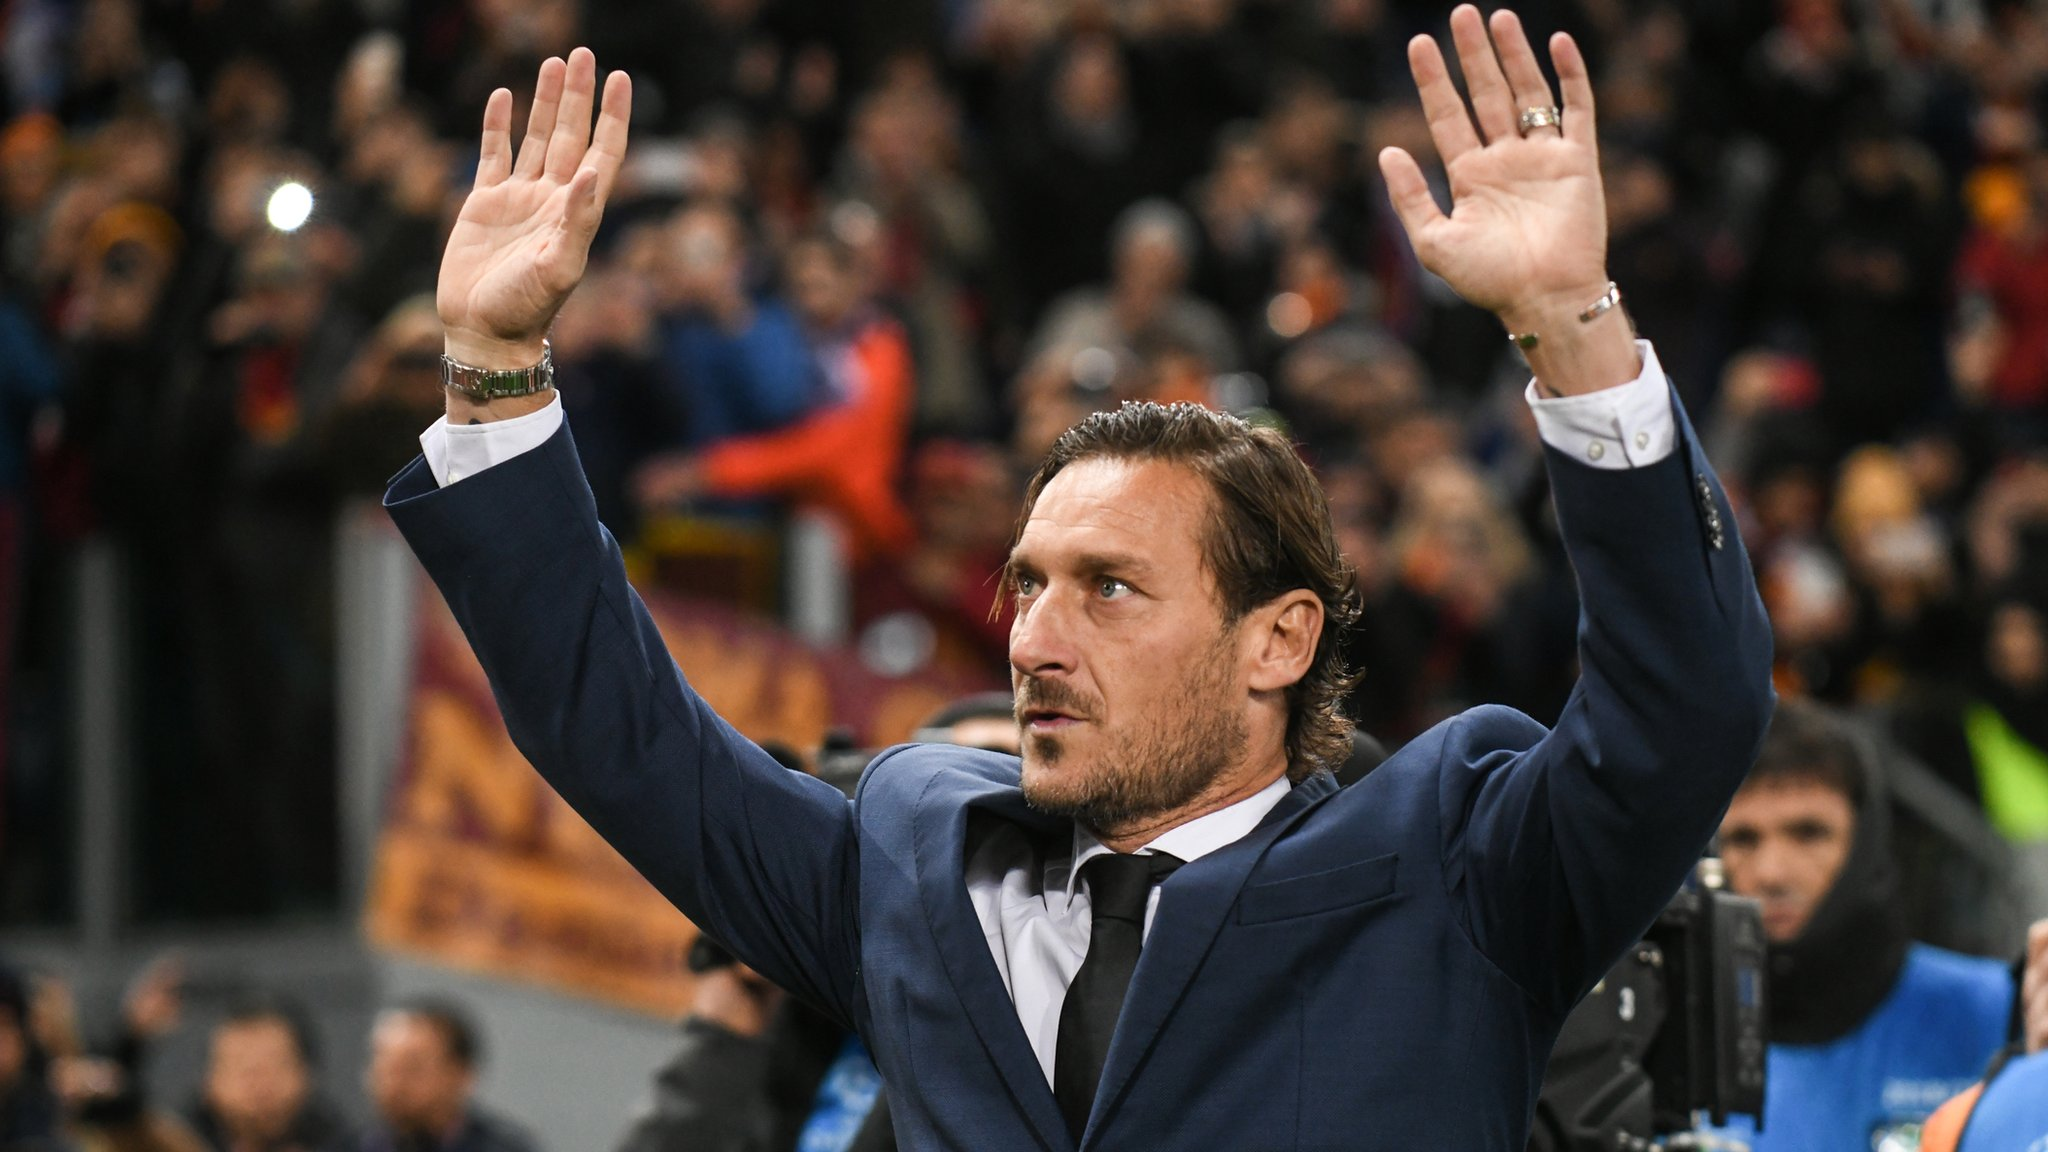 Francesco Totti leaves Roma after 30 years as he resigns as director